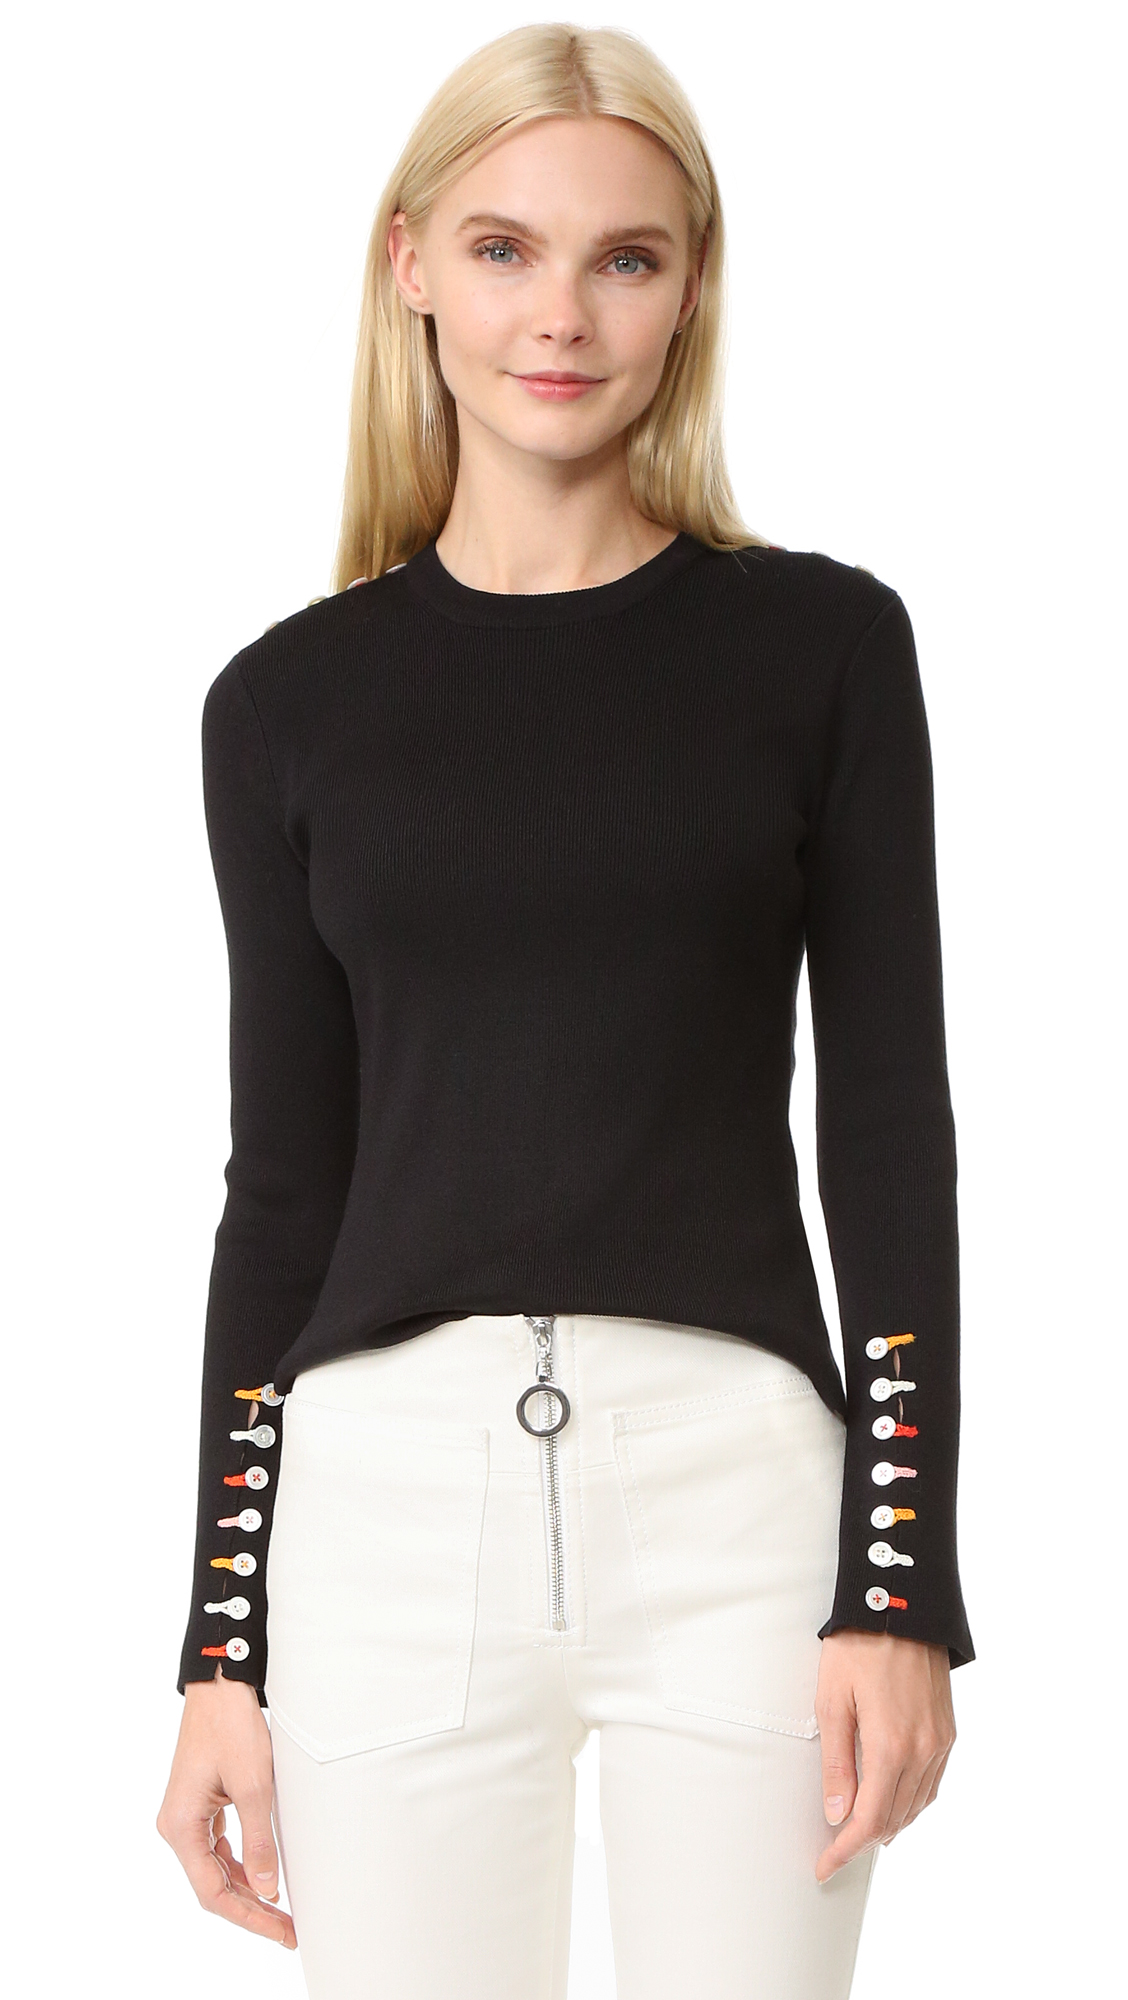 Edun Long Sleeve Fringe Sweater - Black at Shopbop